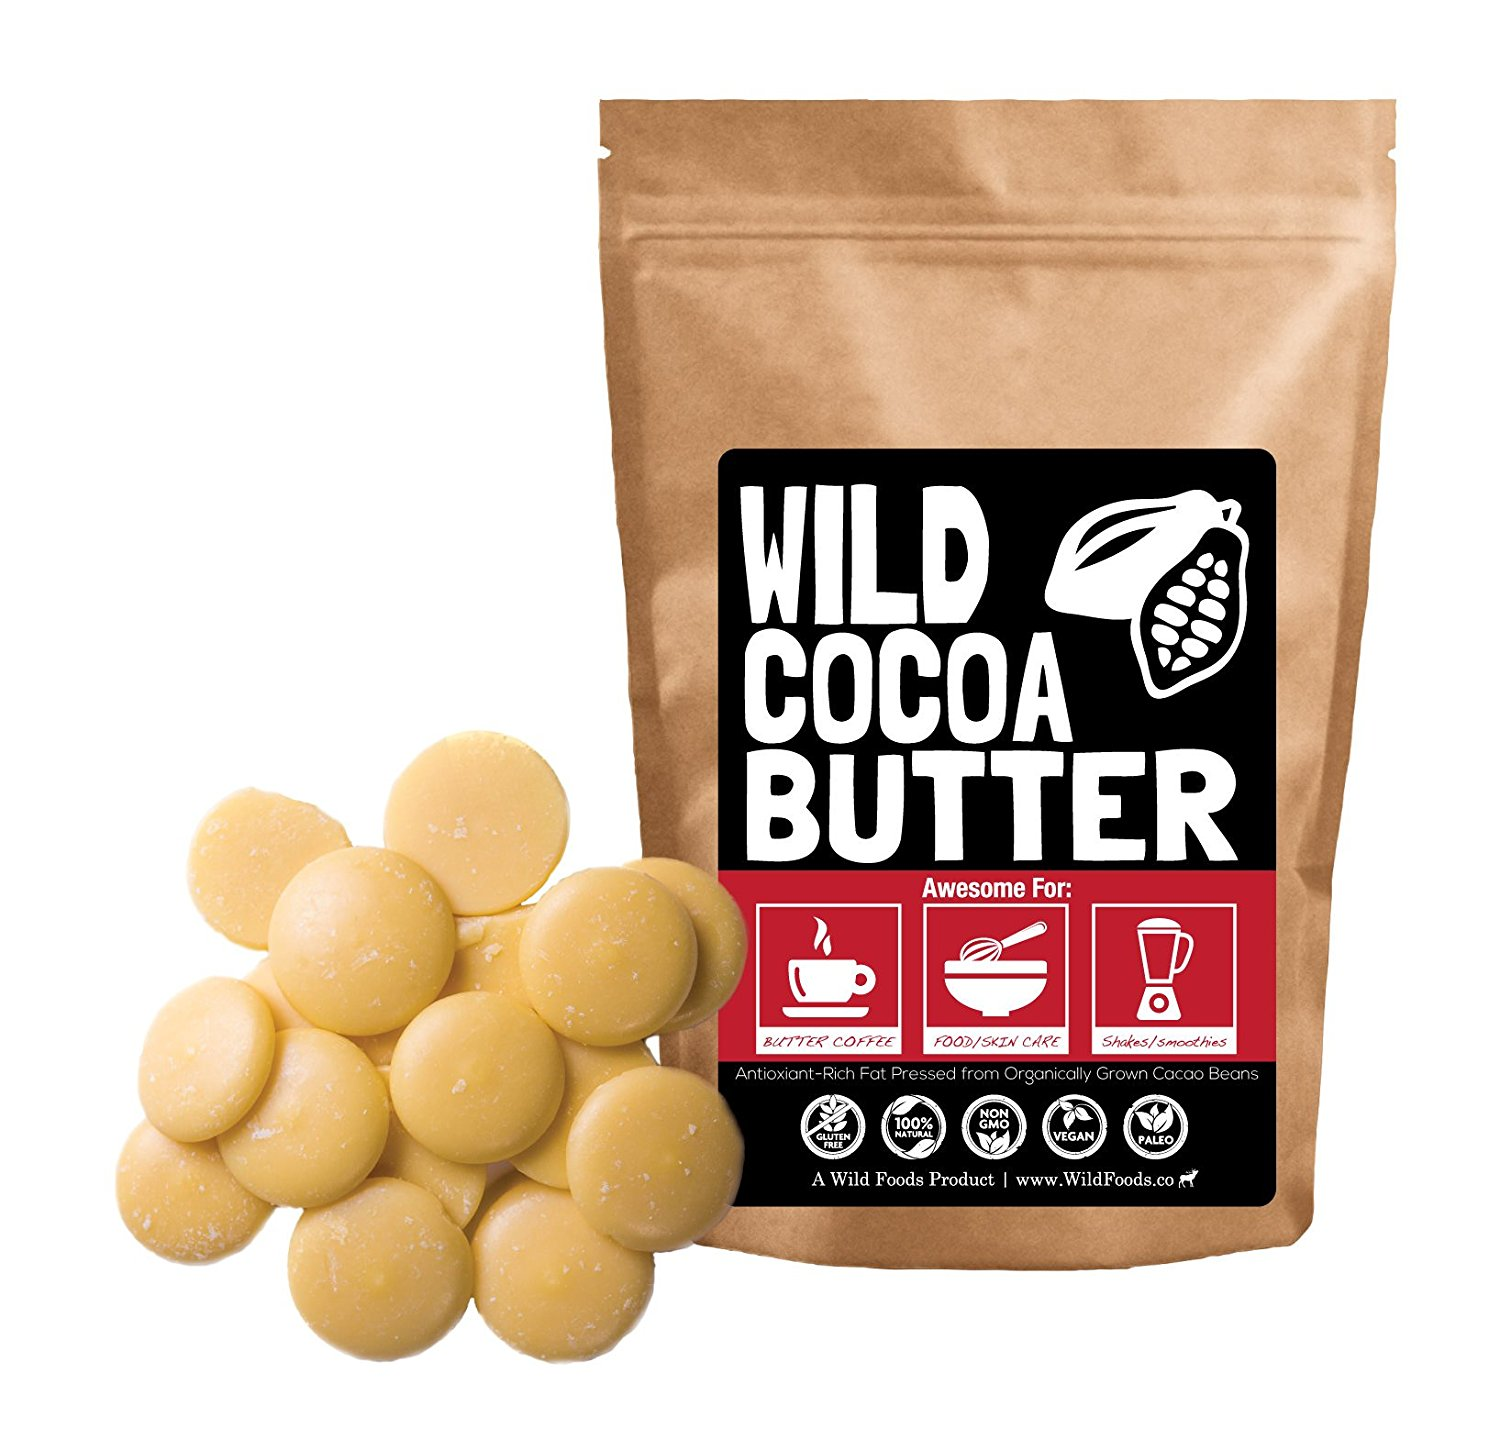 Raw Cocoa Butter Wafers From Organically Grown Cacao Beans, Unrefined, Non-Deodorized, Food Grade, Fresh For Recipes, Cooking, Smoothies, Coffee, Skincare, Haircare (8 ounce)